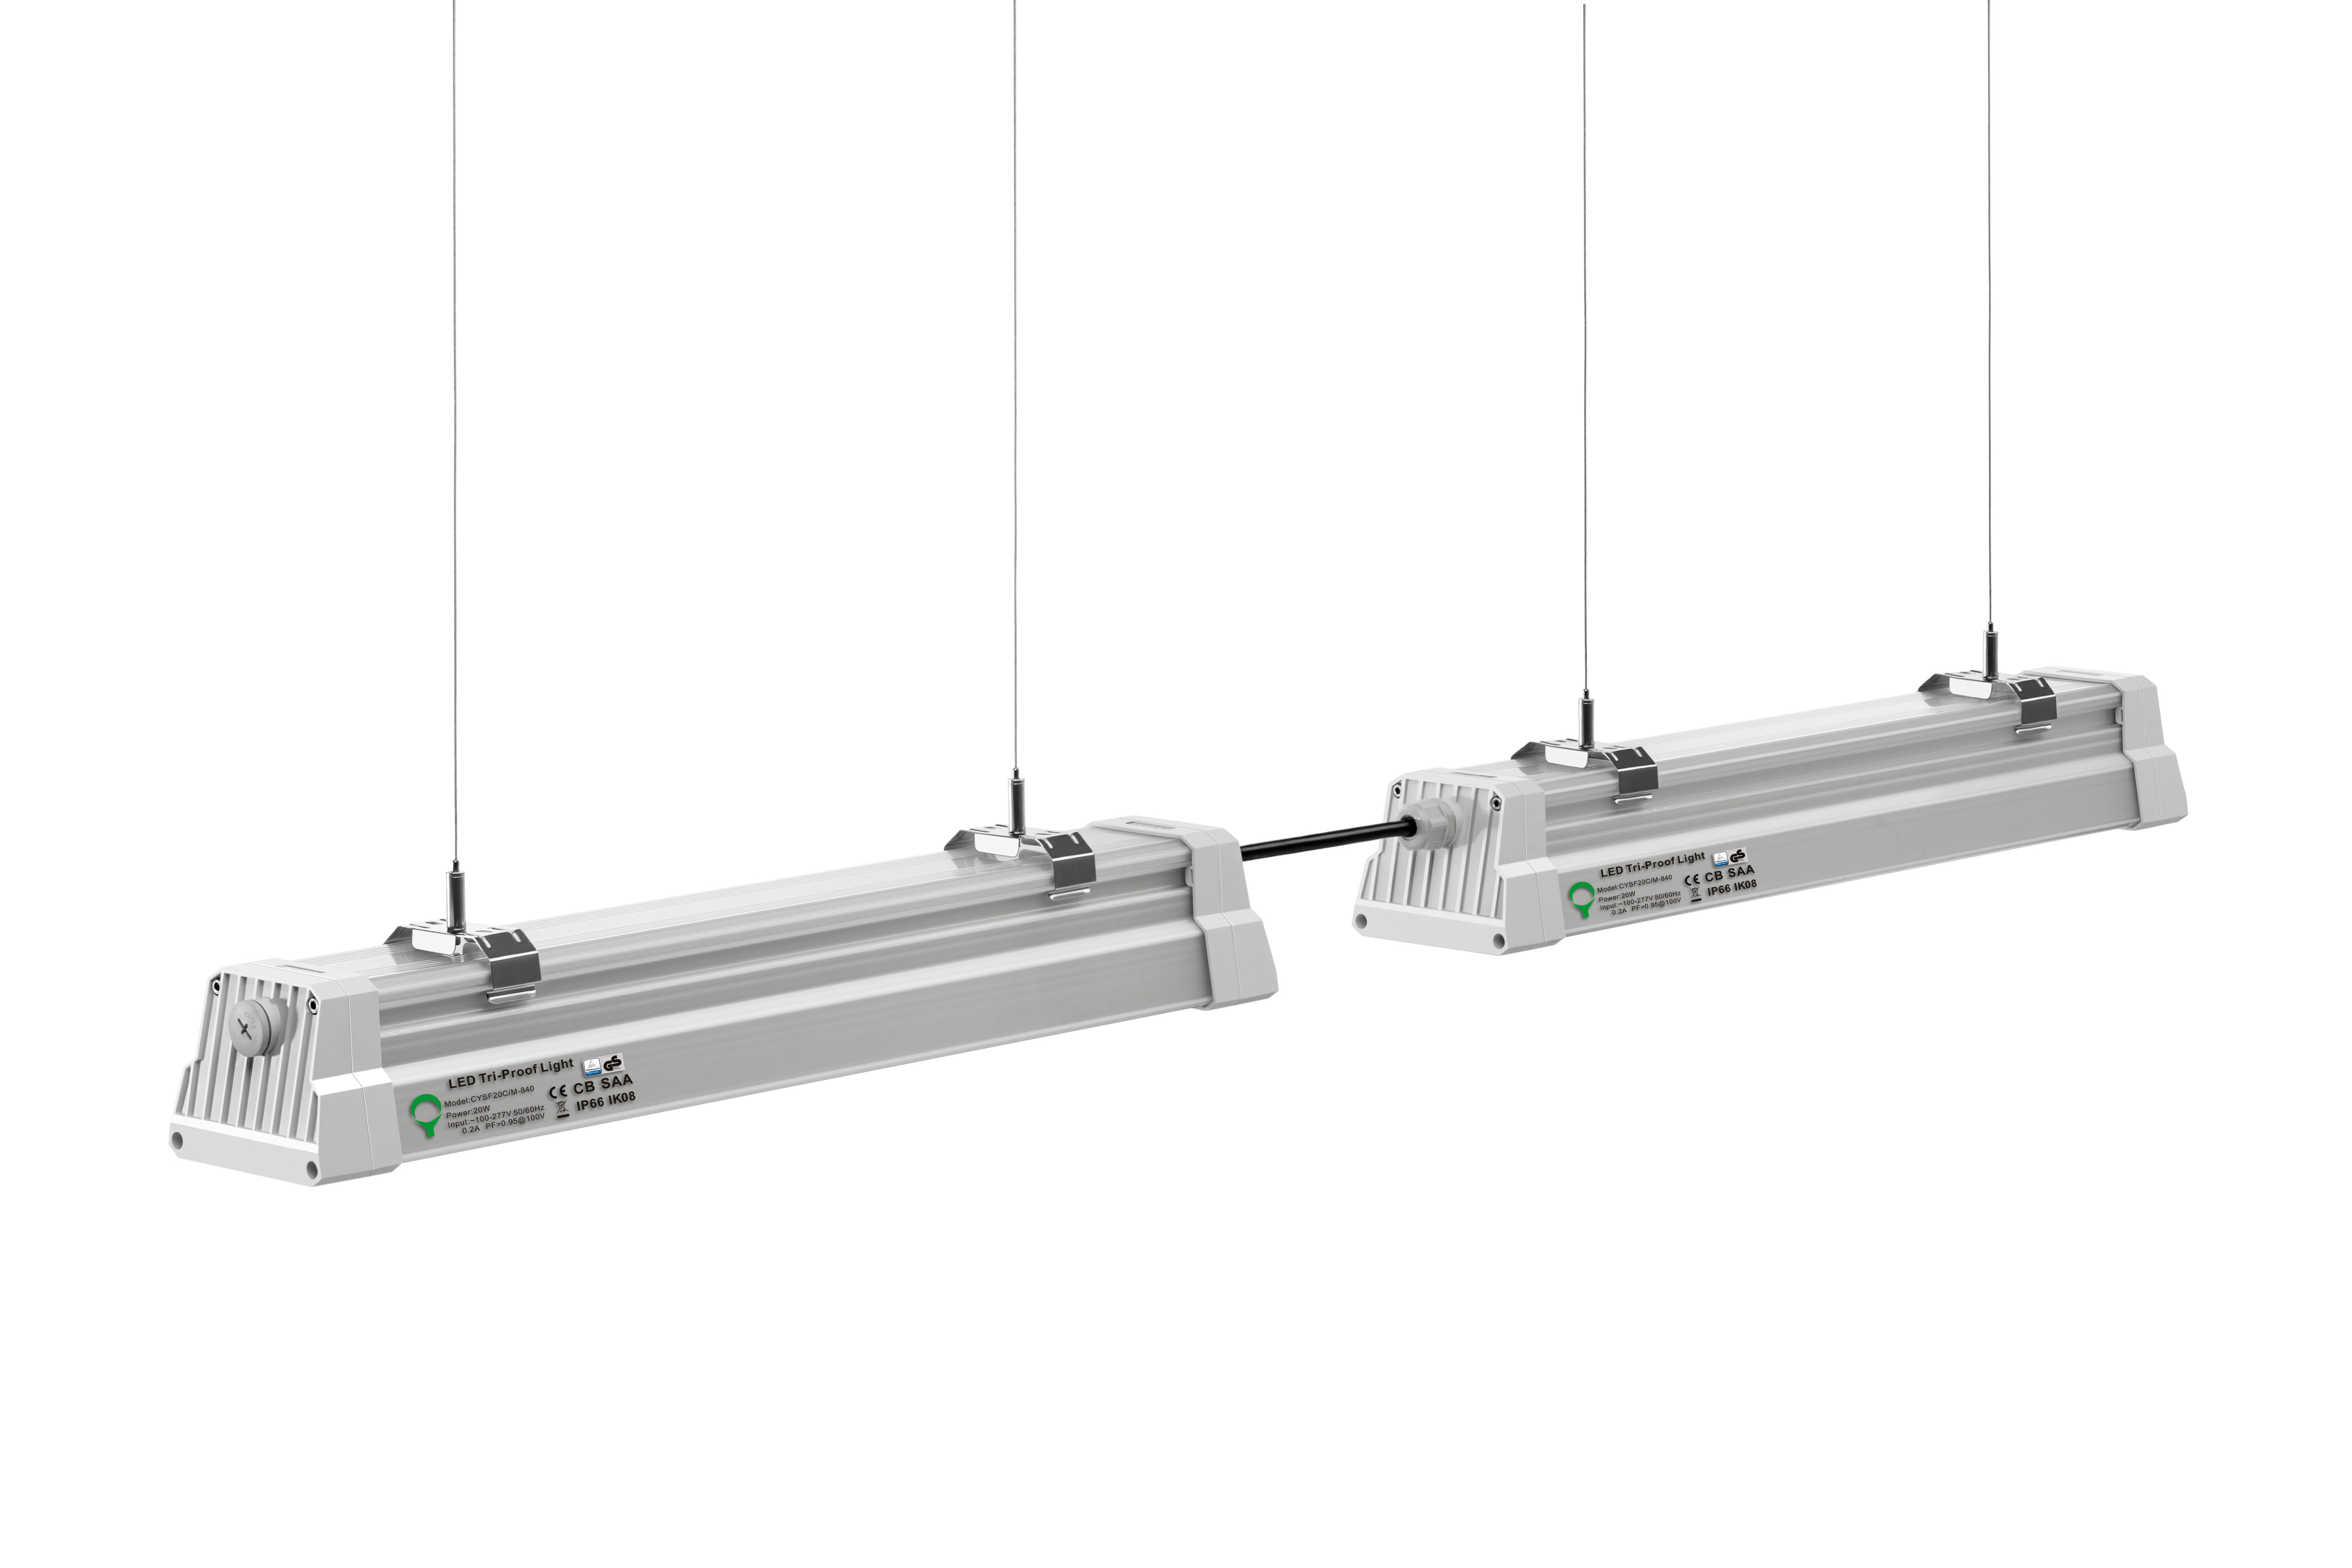 Led Langfeldleuchte Led Gasdichte Leuchte Ip66 Klb Light Solutions